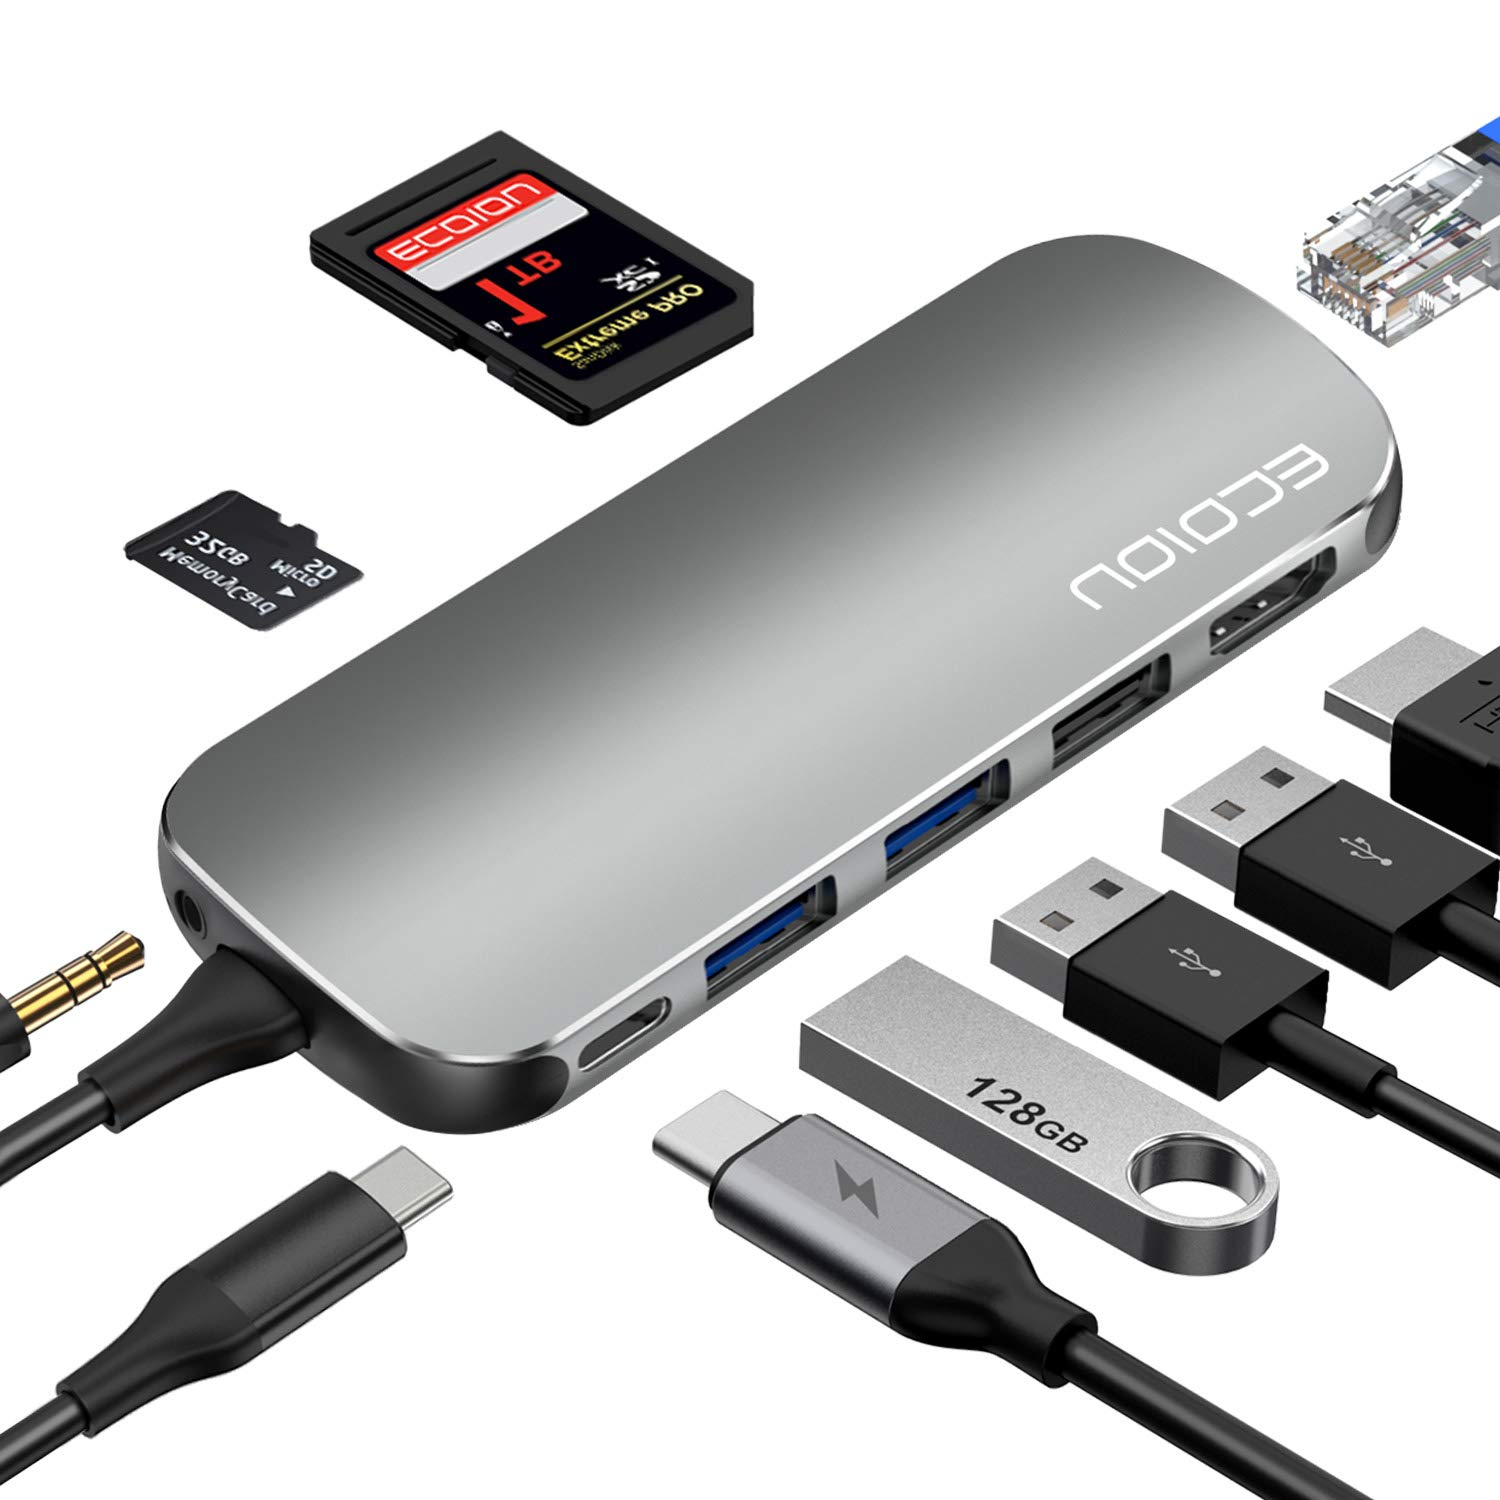 USB C Hub,ECOIOU 9-in-1 Ports Type-C Hub Adapter for 4K HDMI, USB 2.0/3.0 PD Power Delivery, SD 3.0 Card Reader, Ethernet, Audio Jack, Compatible with MacBook, Surface, PixelBook, USB-C Smartphones by ECOIOU